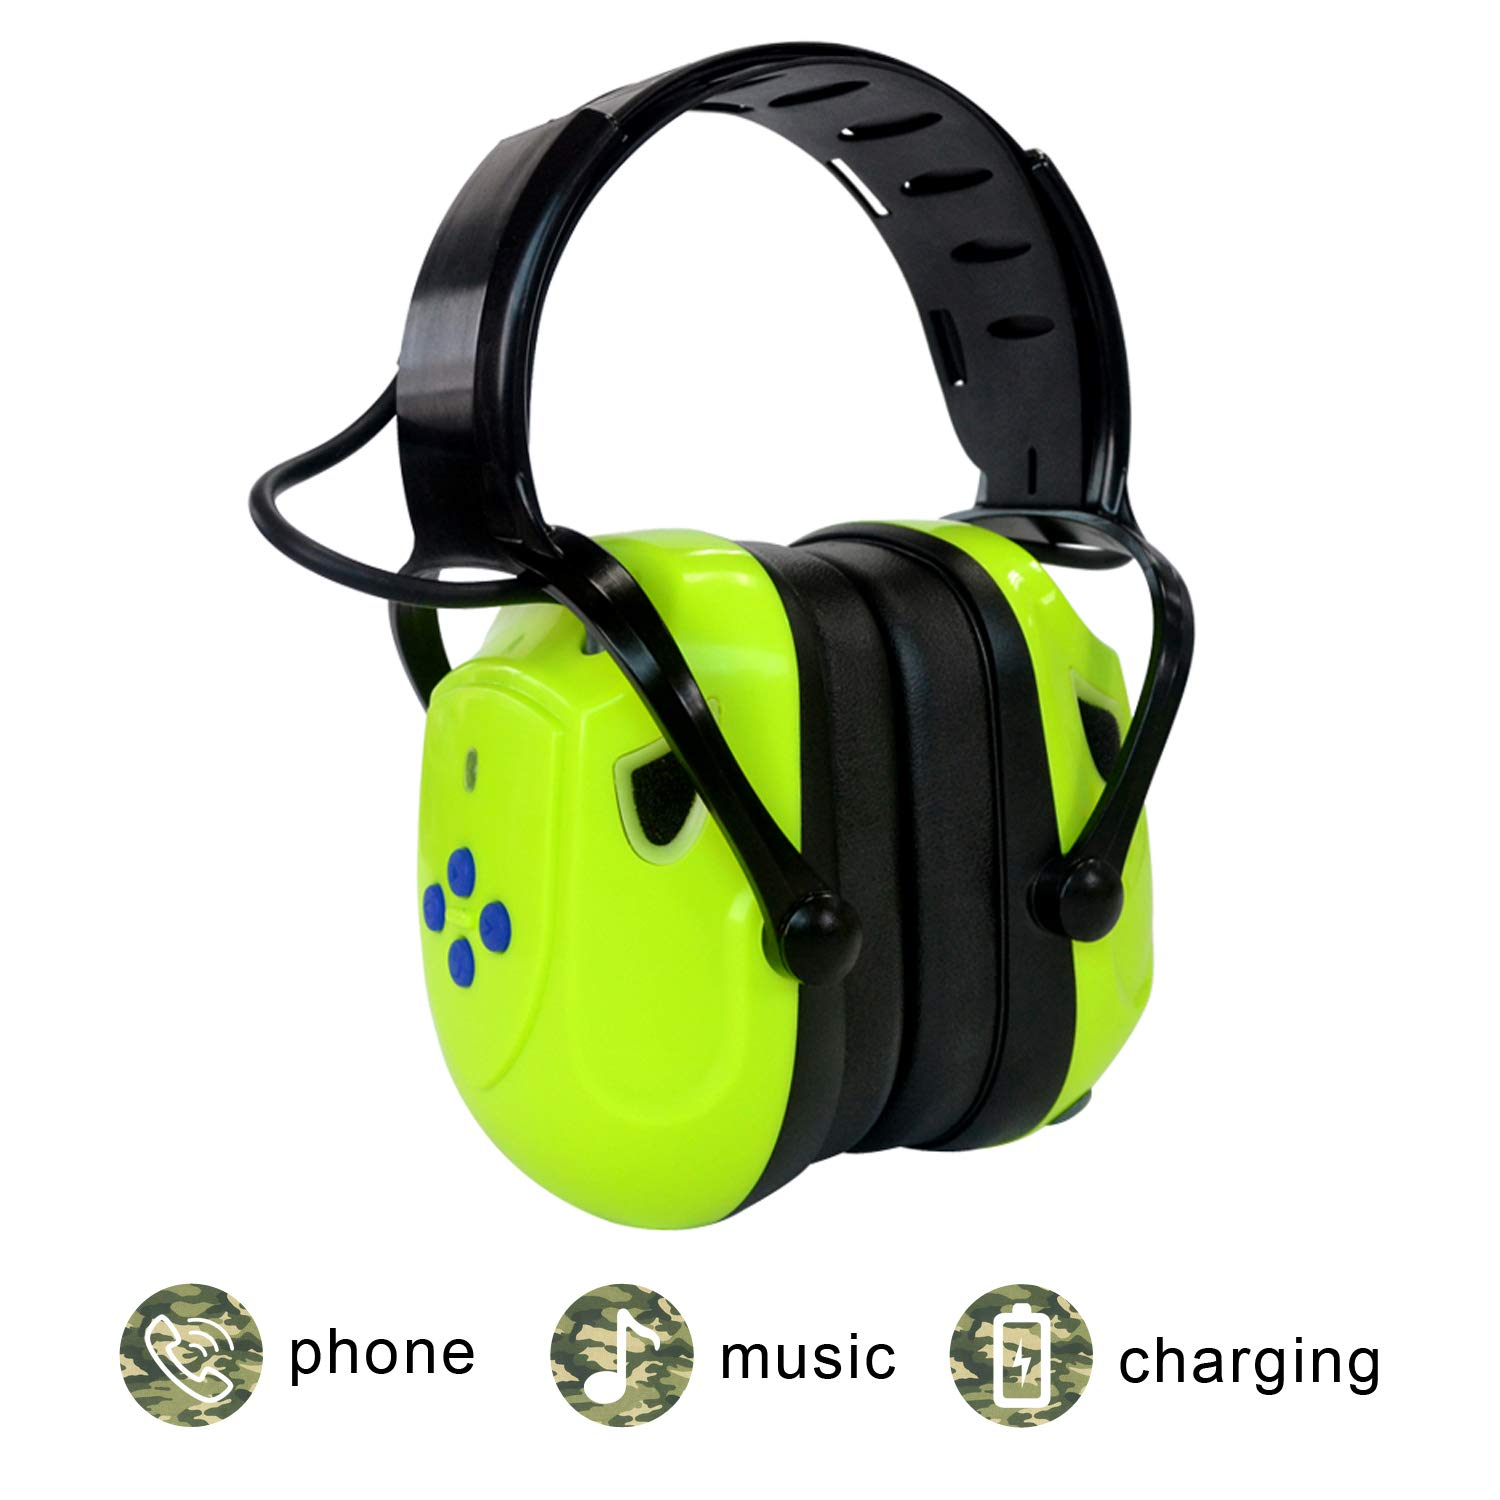 Electronic Shooting Earmuffs, EAREST Rechargeable Bluetooth Ear Muffs Headphone/Sound Amplification Noise Reduction Ear Protection, Ideal for Shooting and Hunting,Fluorescent Green by EAREST